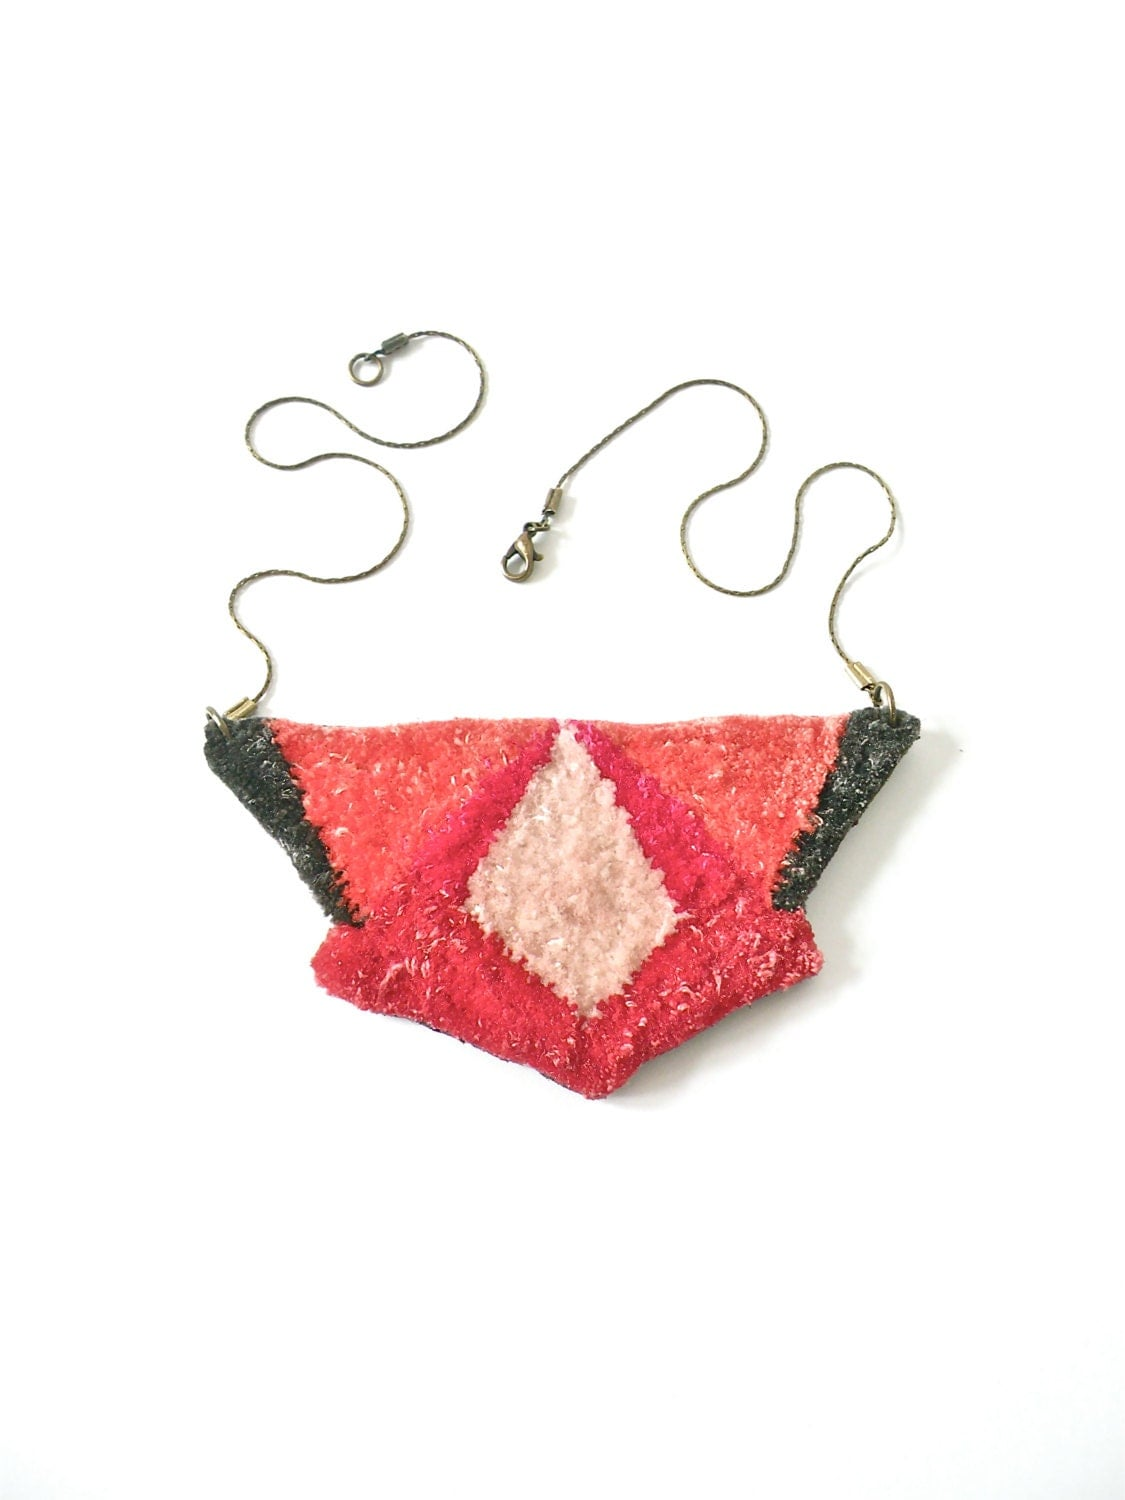 Hand embroidered Velvet Geometric Polygon Necklace / Salmon, Burgundy, Fuchsia, Brush PInk & Grey / Embroidered Pendant Statement Necklace - jujujust